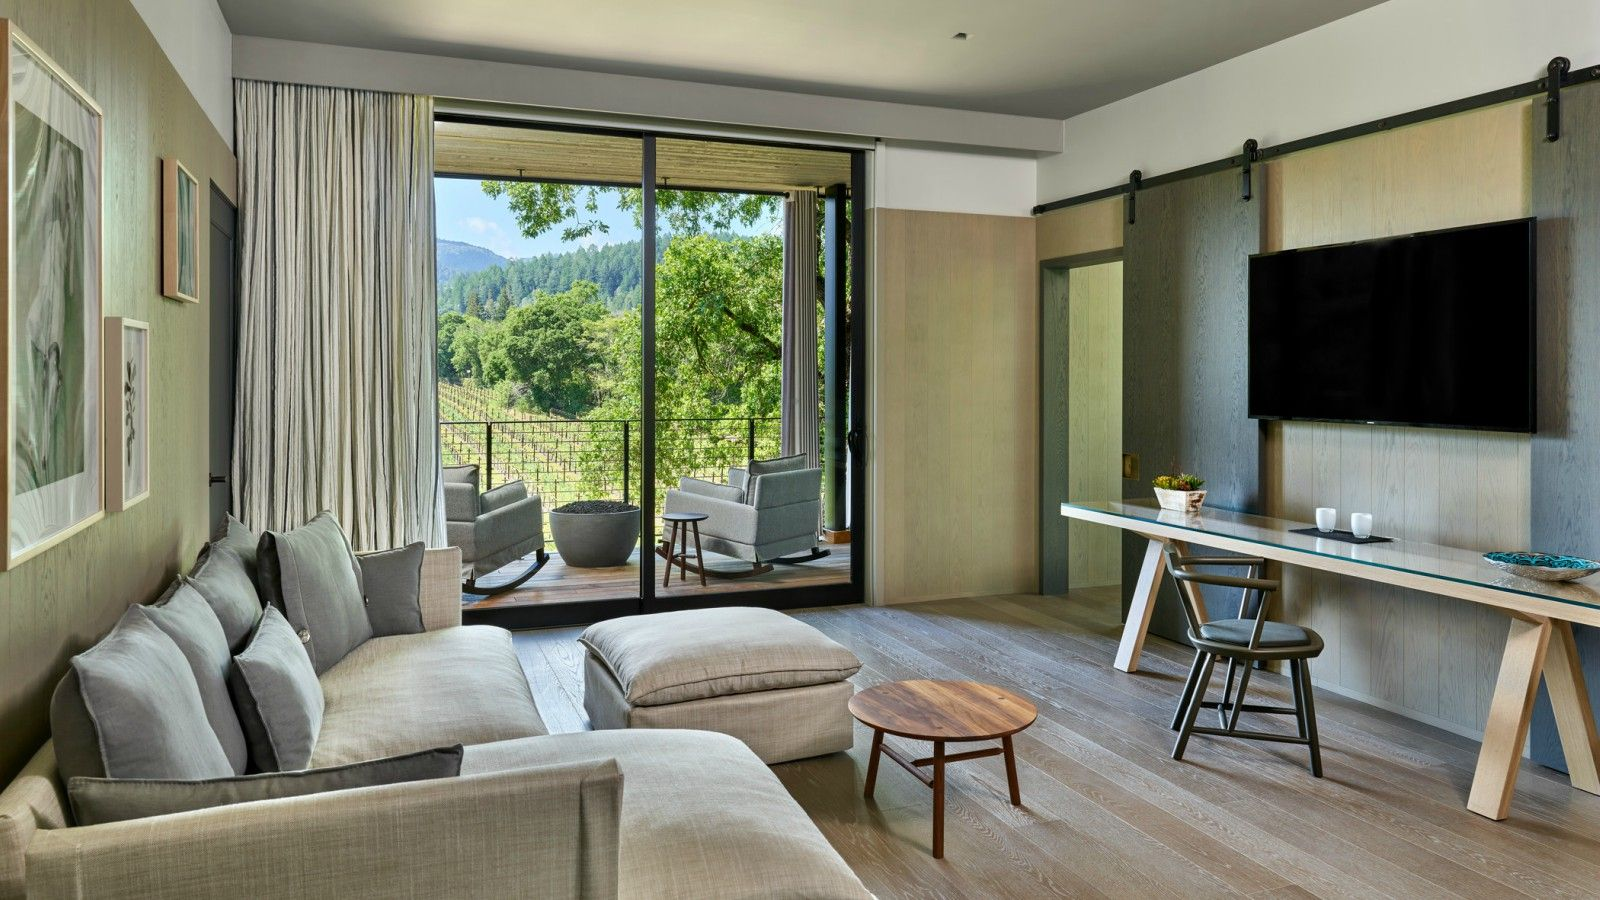 Las Alcobas, a Luxury Collection Hotel, Napa Valley - York Creek Suite - Accessible Deluxe King One Bedroom Suite